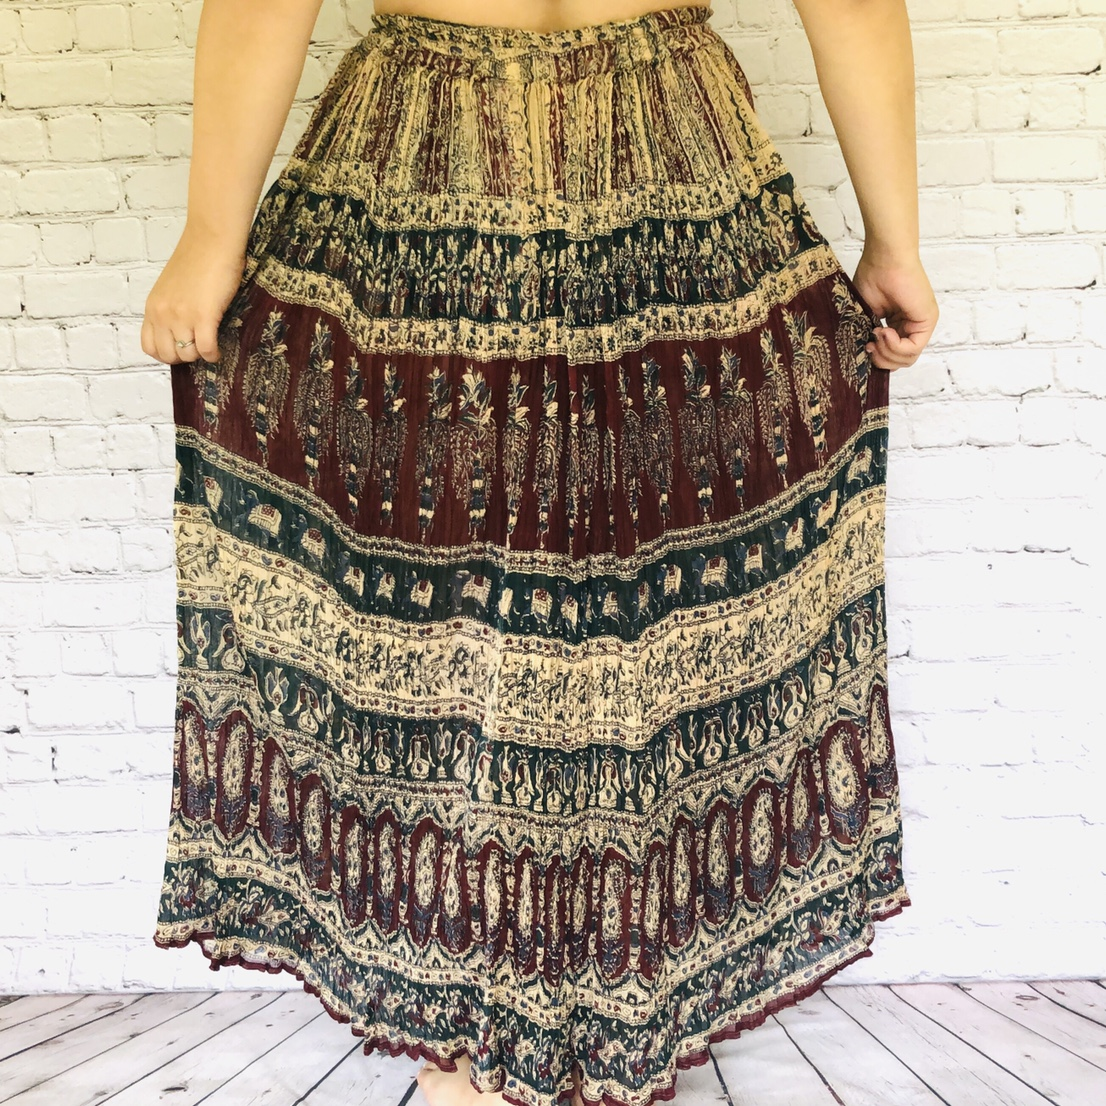 Product Image 1 - Vintage bohemian skirt with draw